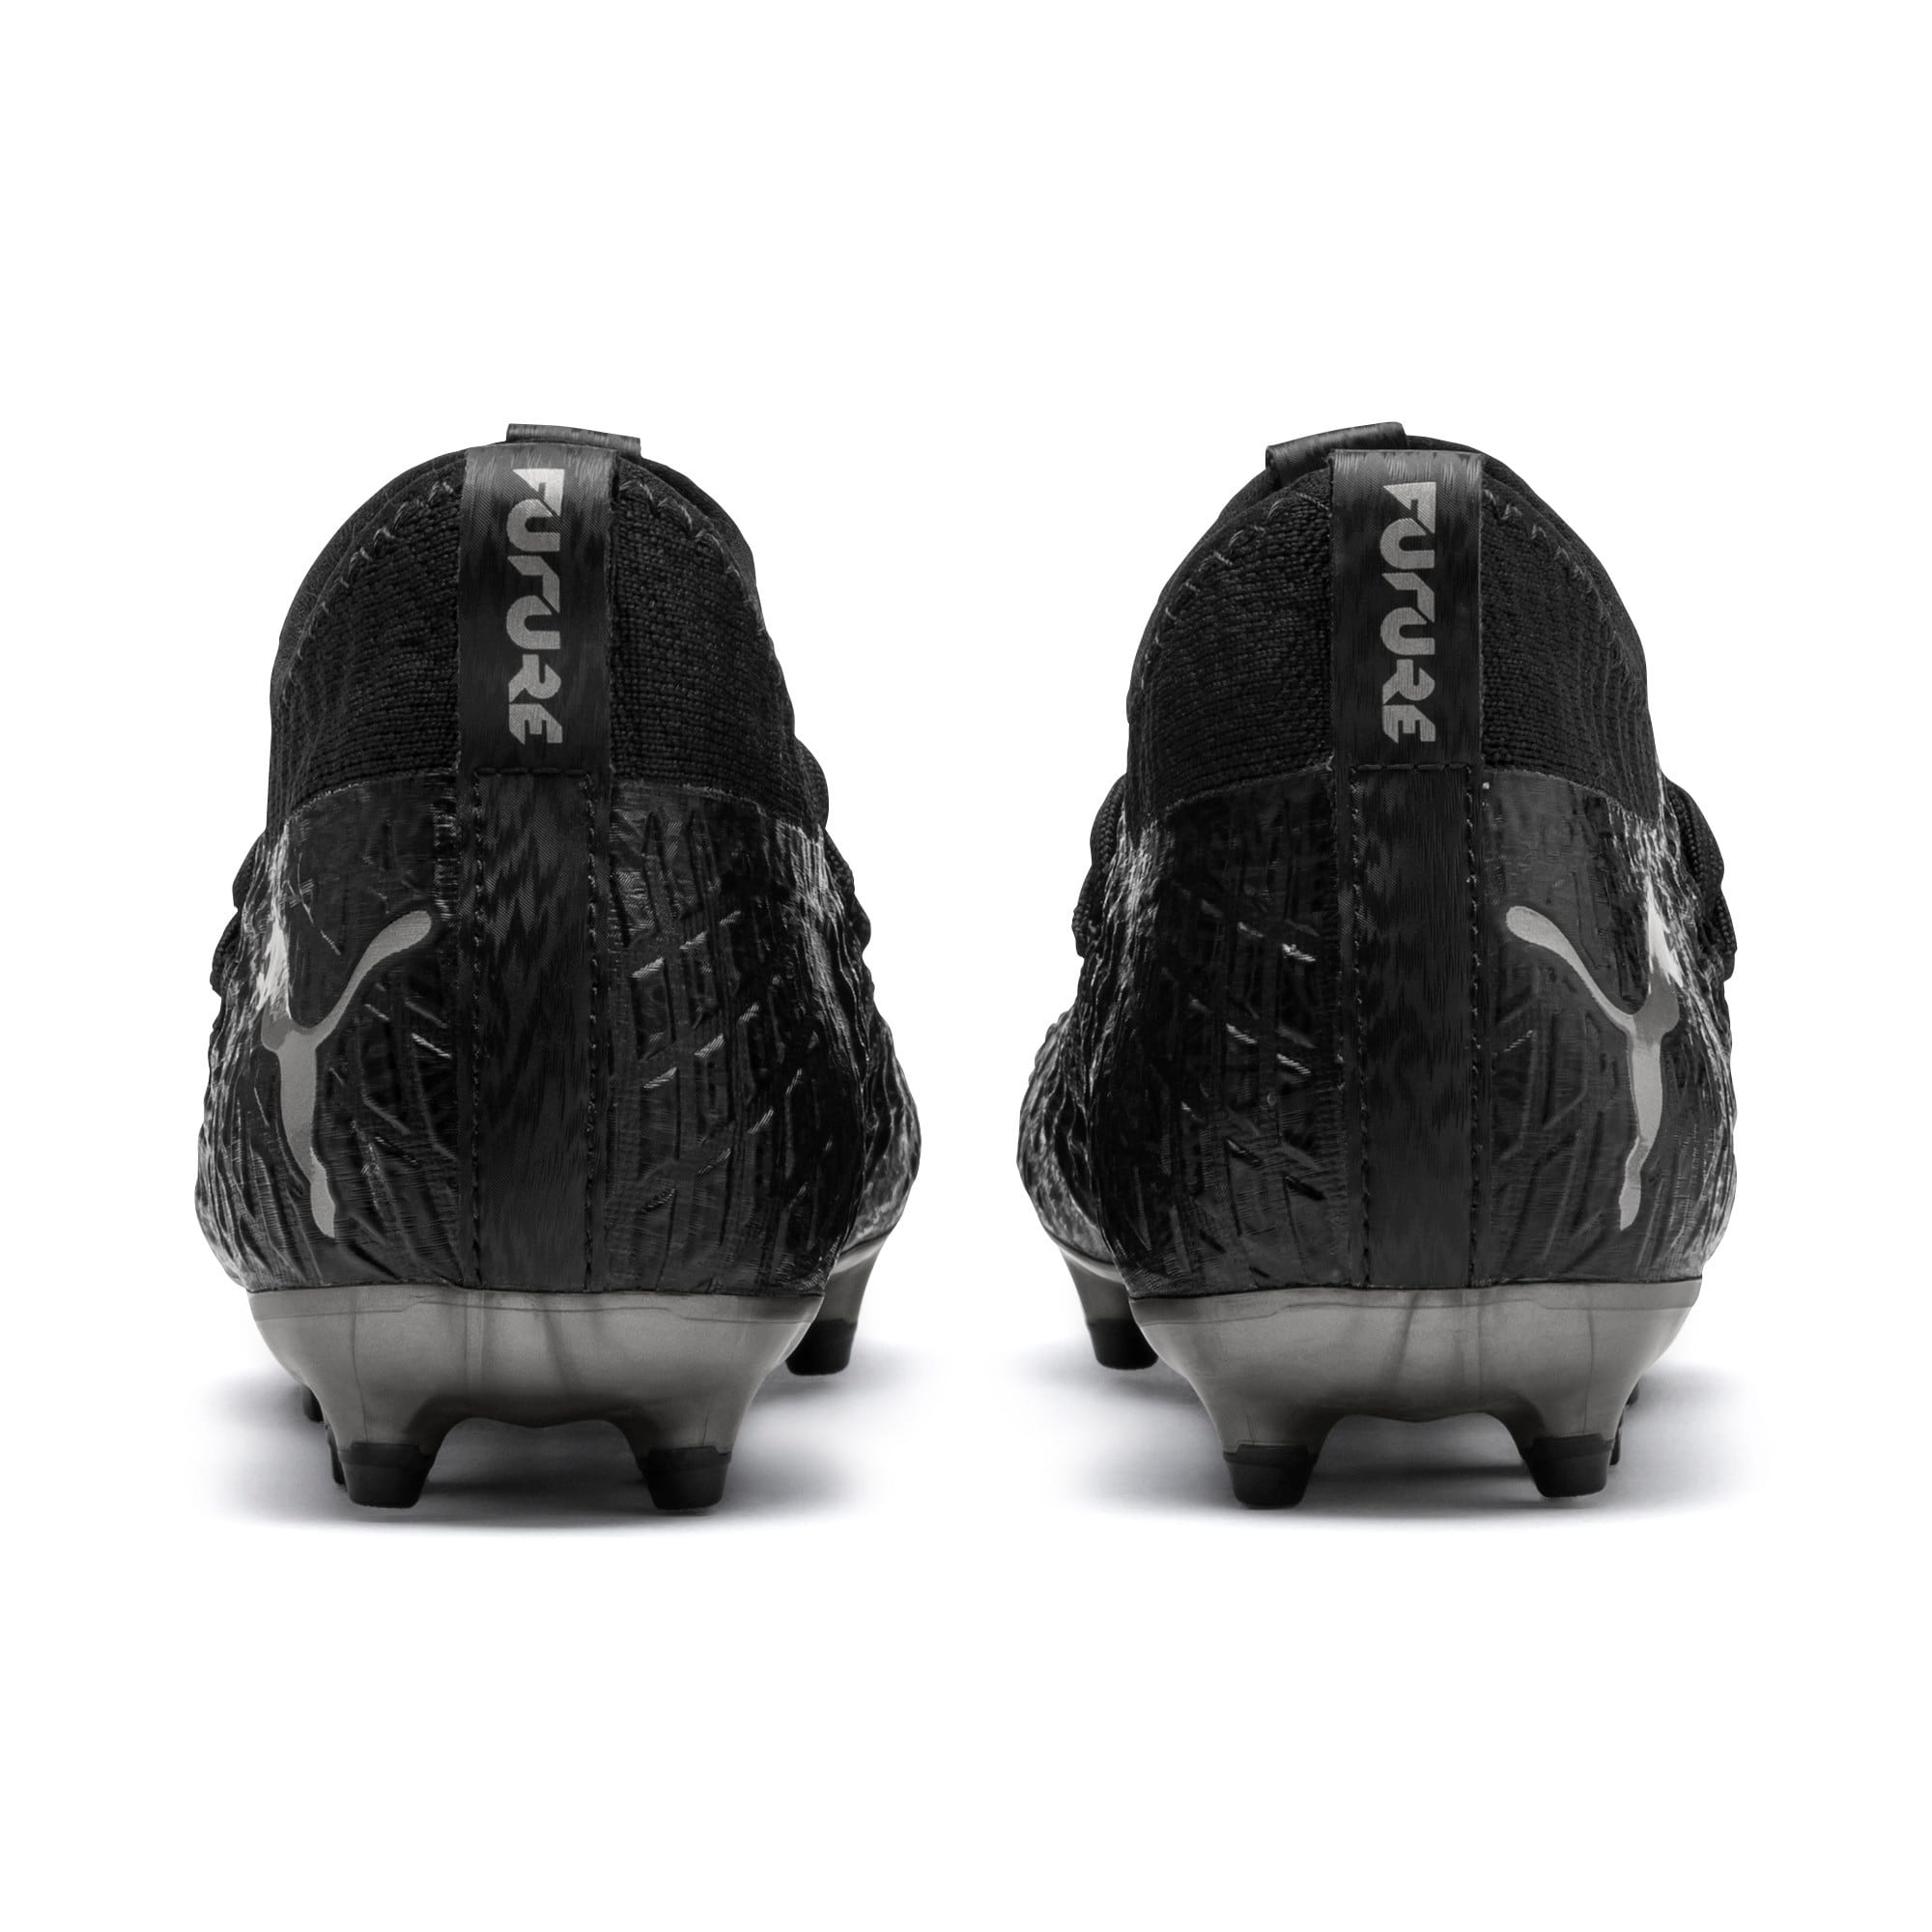 Thumbnail 3 of FUTURE 4.3 NETFIT Youth FG/AG Football Boots, Black-Black-Puma Aged Silver, medium